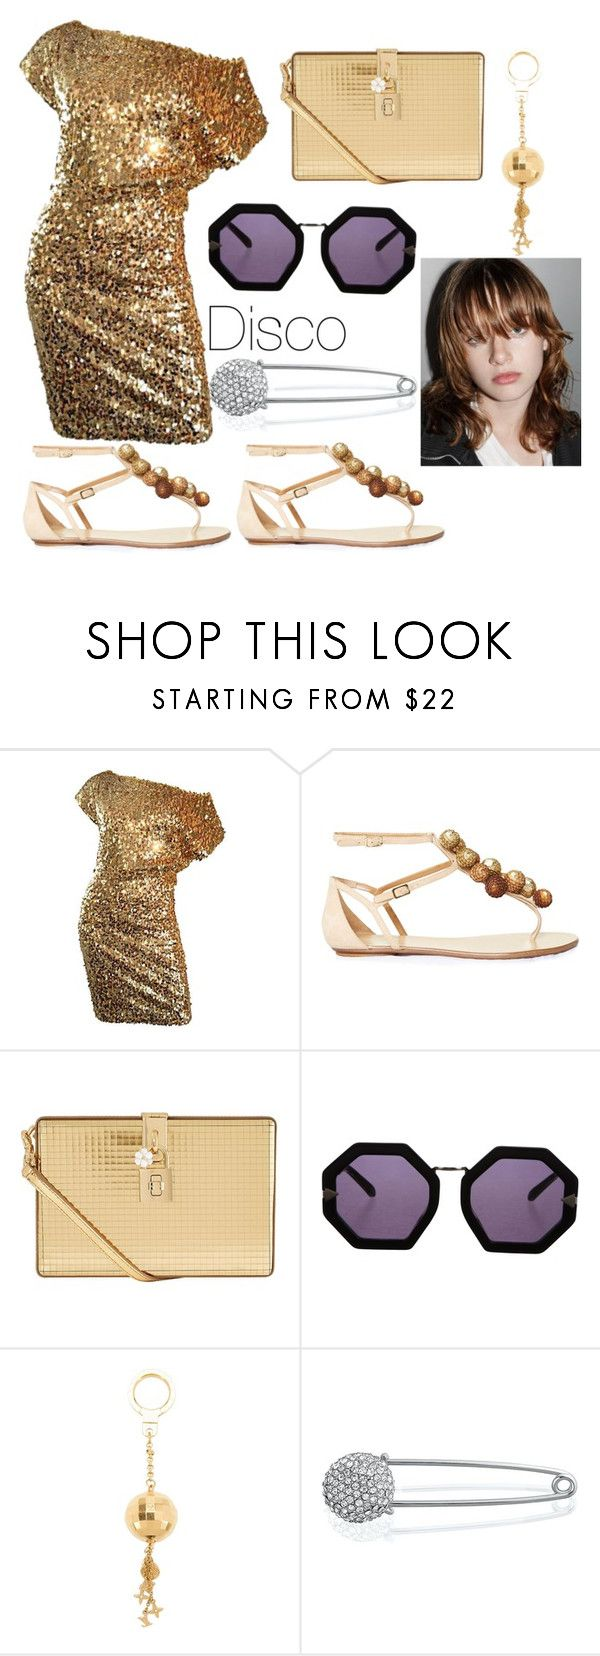 """Disco"" by canada-nickname ❤ liked on Polyvore featuring Paul & Joe, Aquazzura, Dolce&Gabbana, Karen Walker, Louis Vuitton and Bling Jewelry"